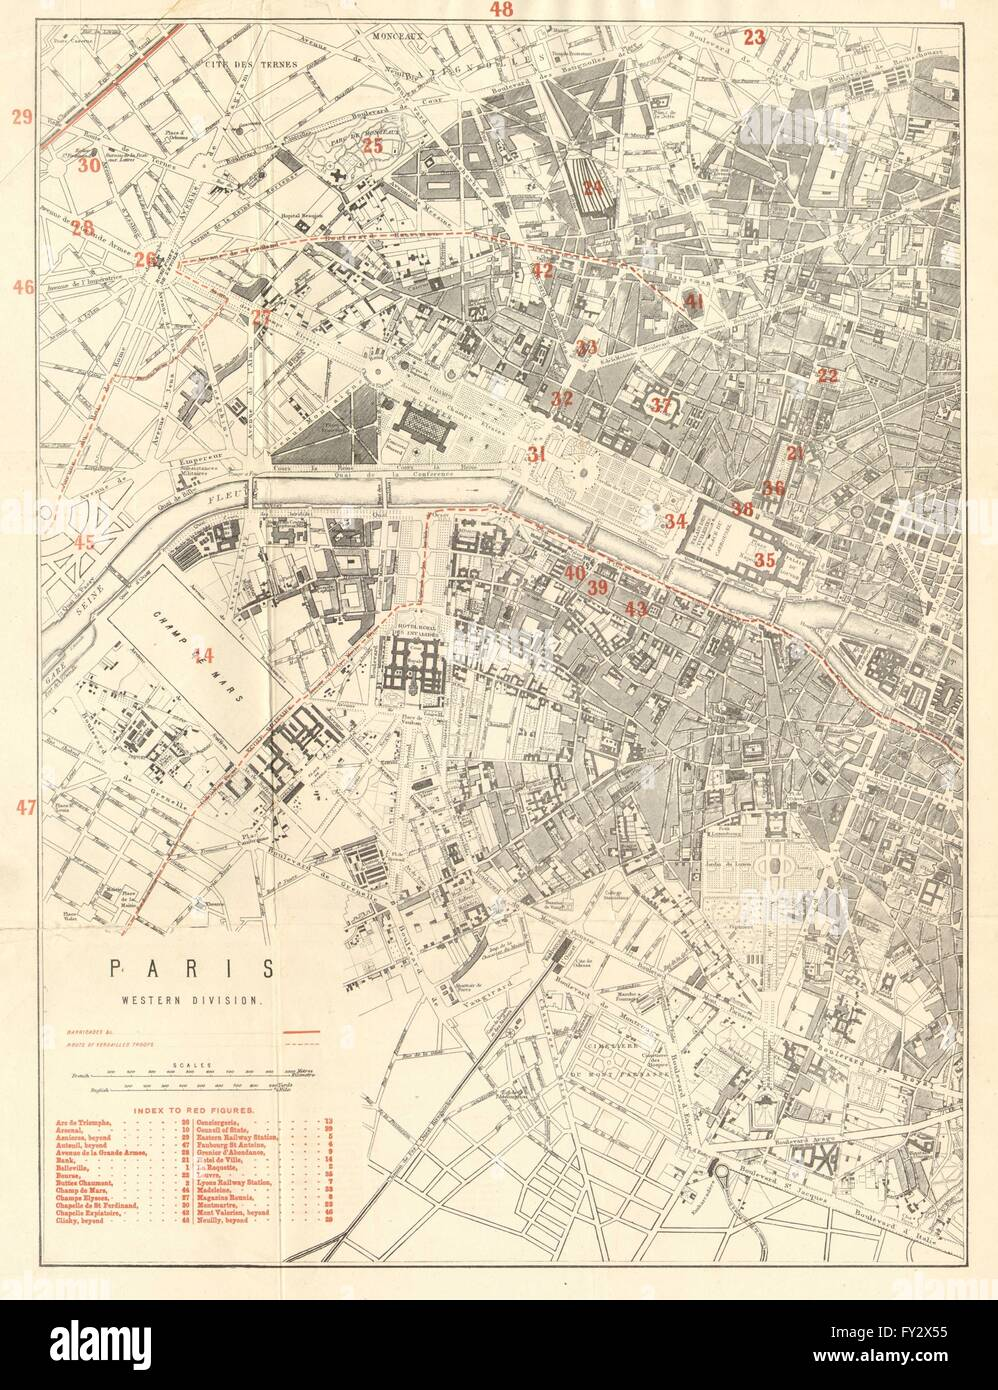 Paris Georgia Map.Paris West Franco Prussian War Barricades Versailles Troops Stock